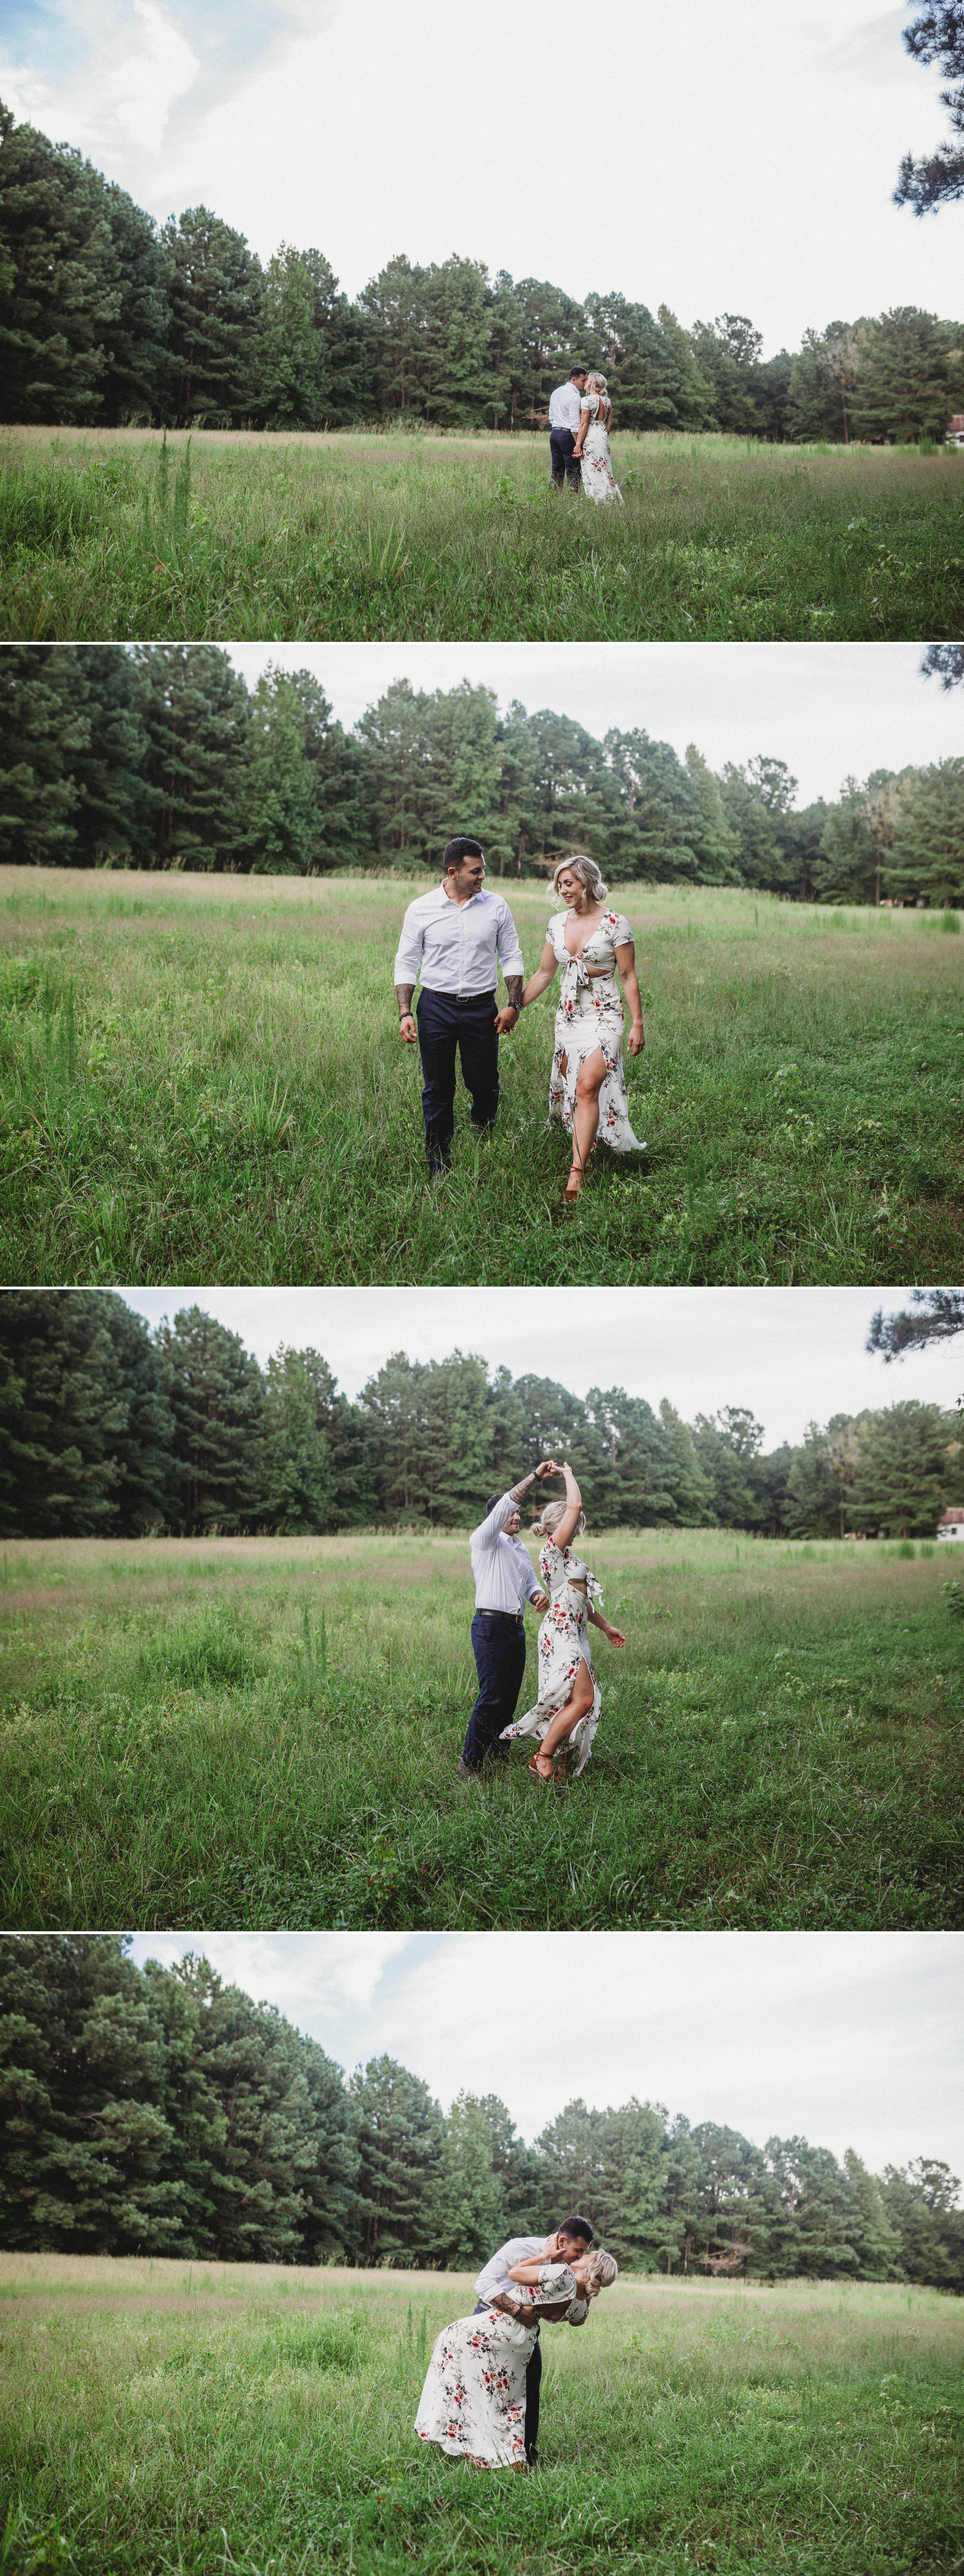 Cassie + Jesse - Engagement Photography Session in a field - Fayetteville North Carolina Wedding Photographer 7.jpg